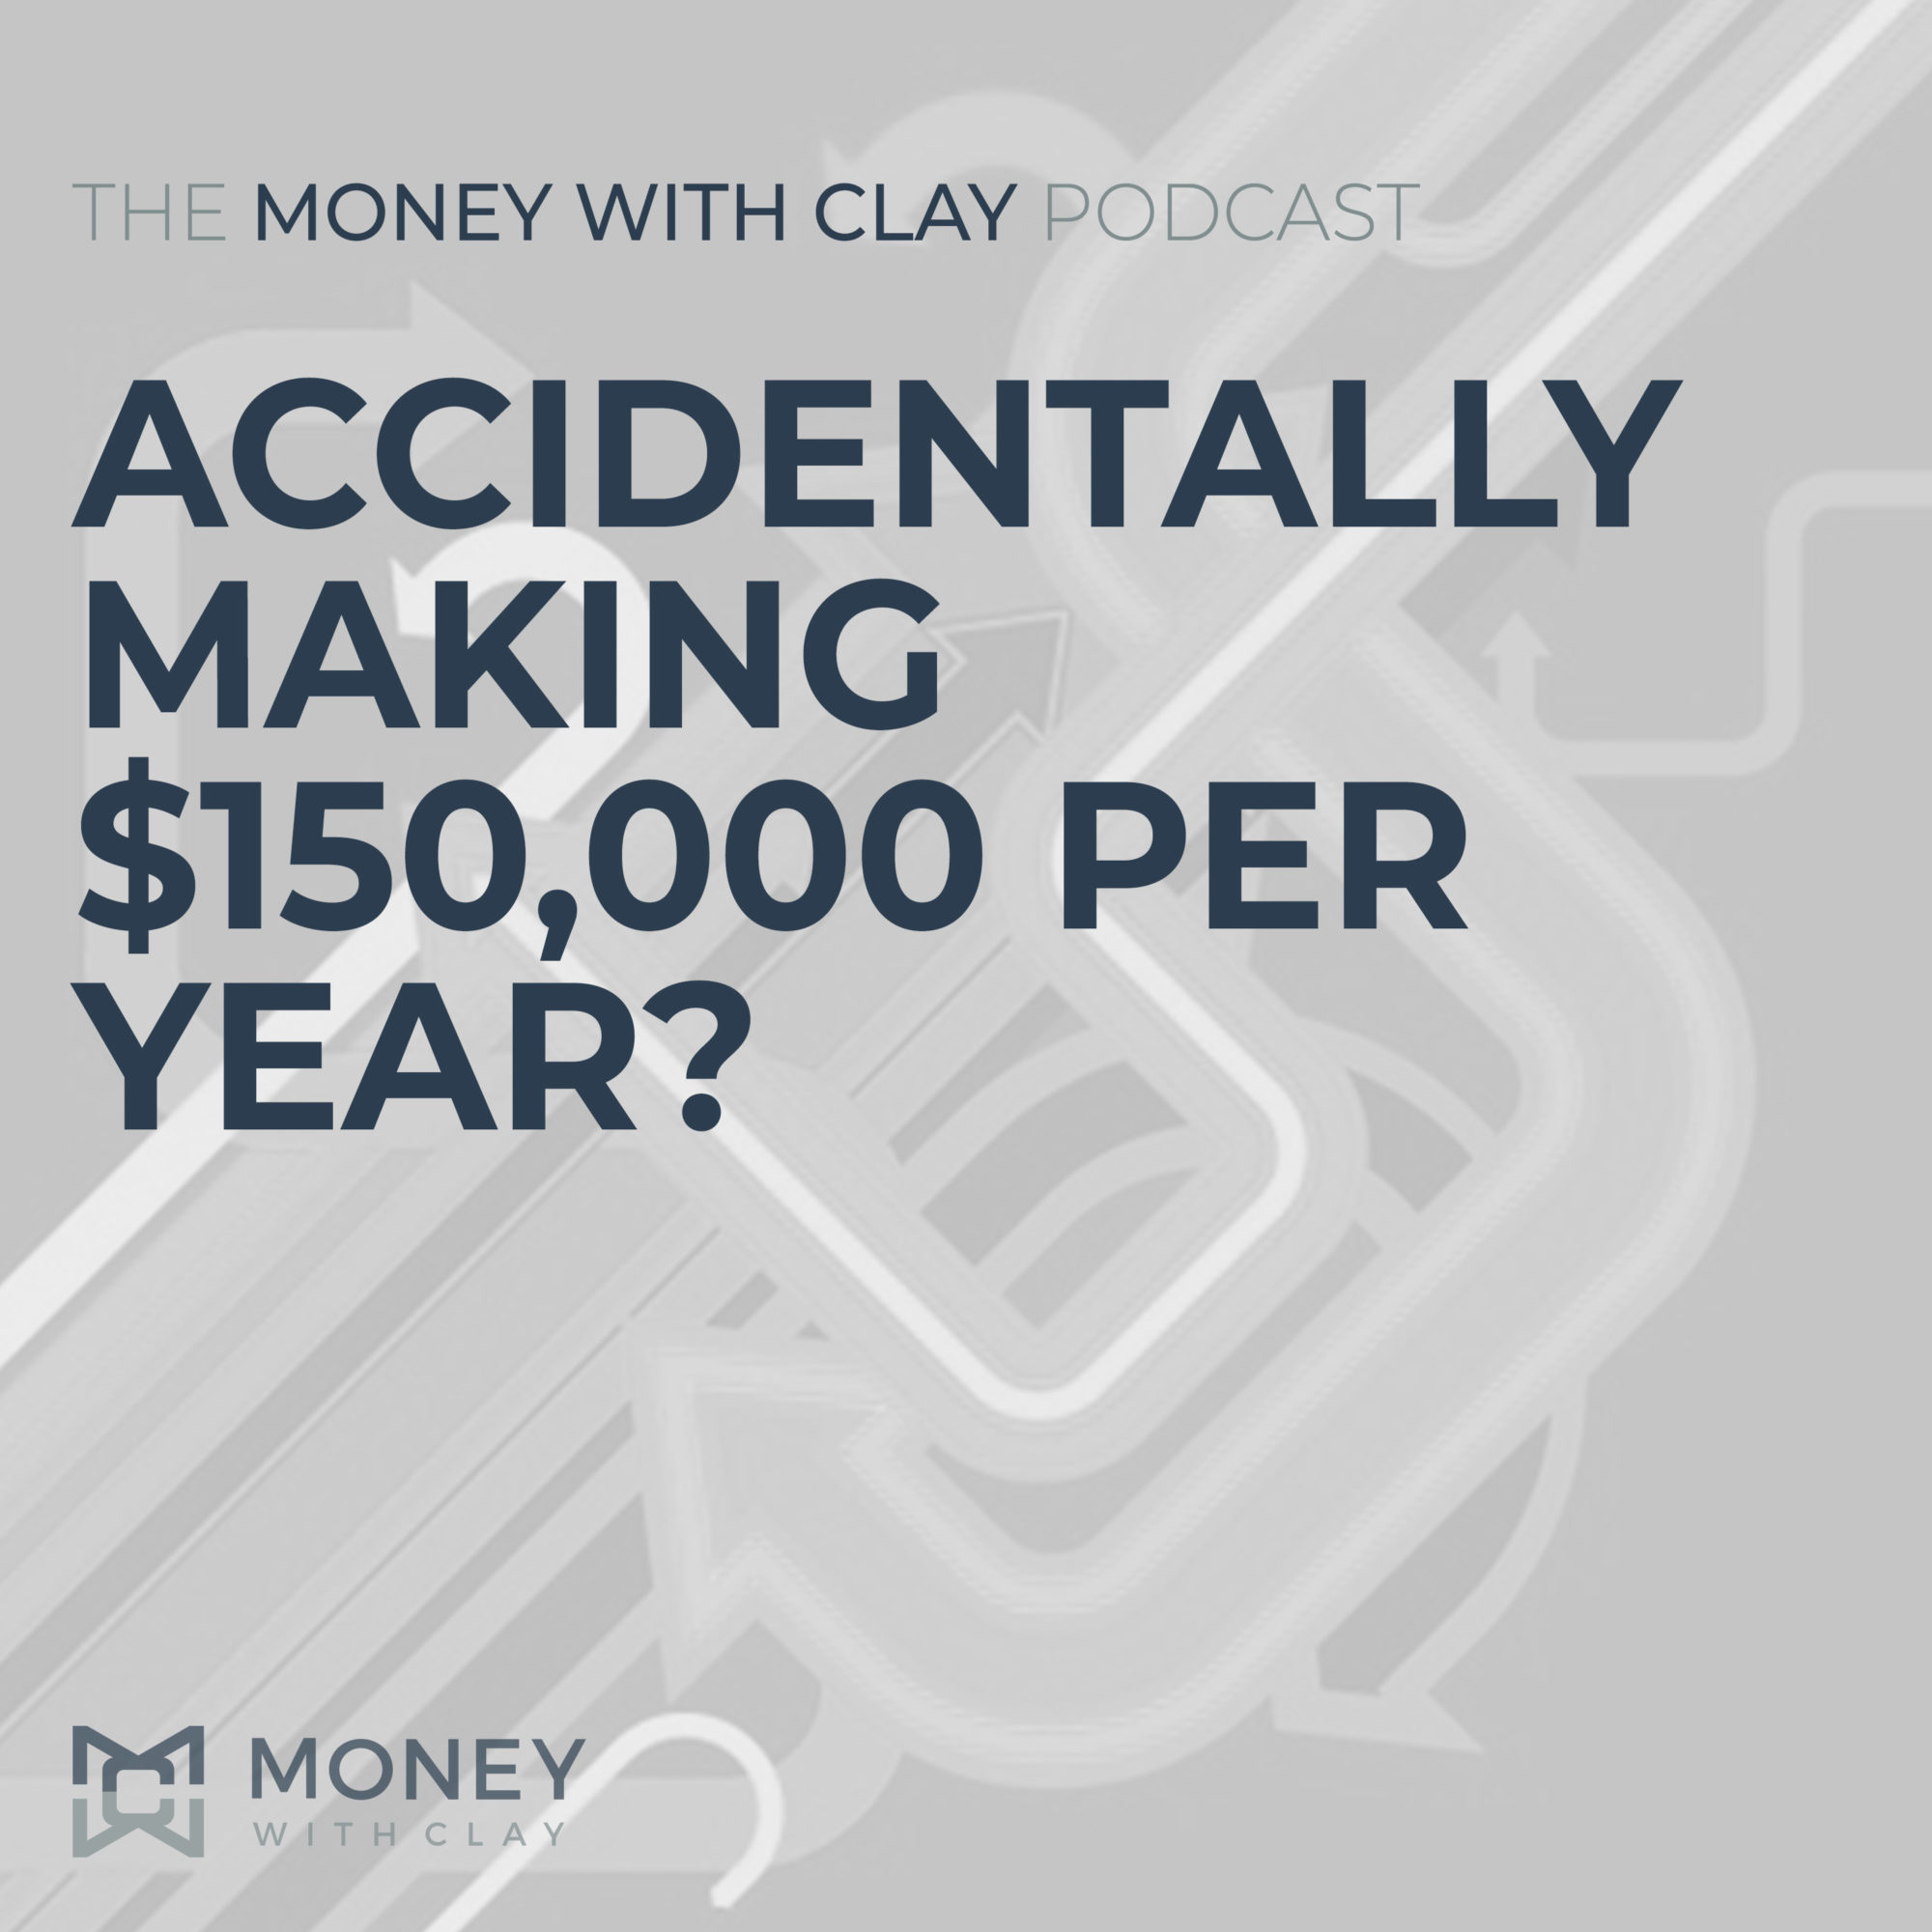 #049 - Accidentally Making $150,000 Per Year?